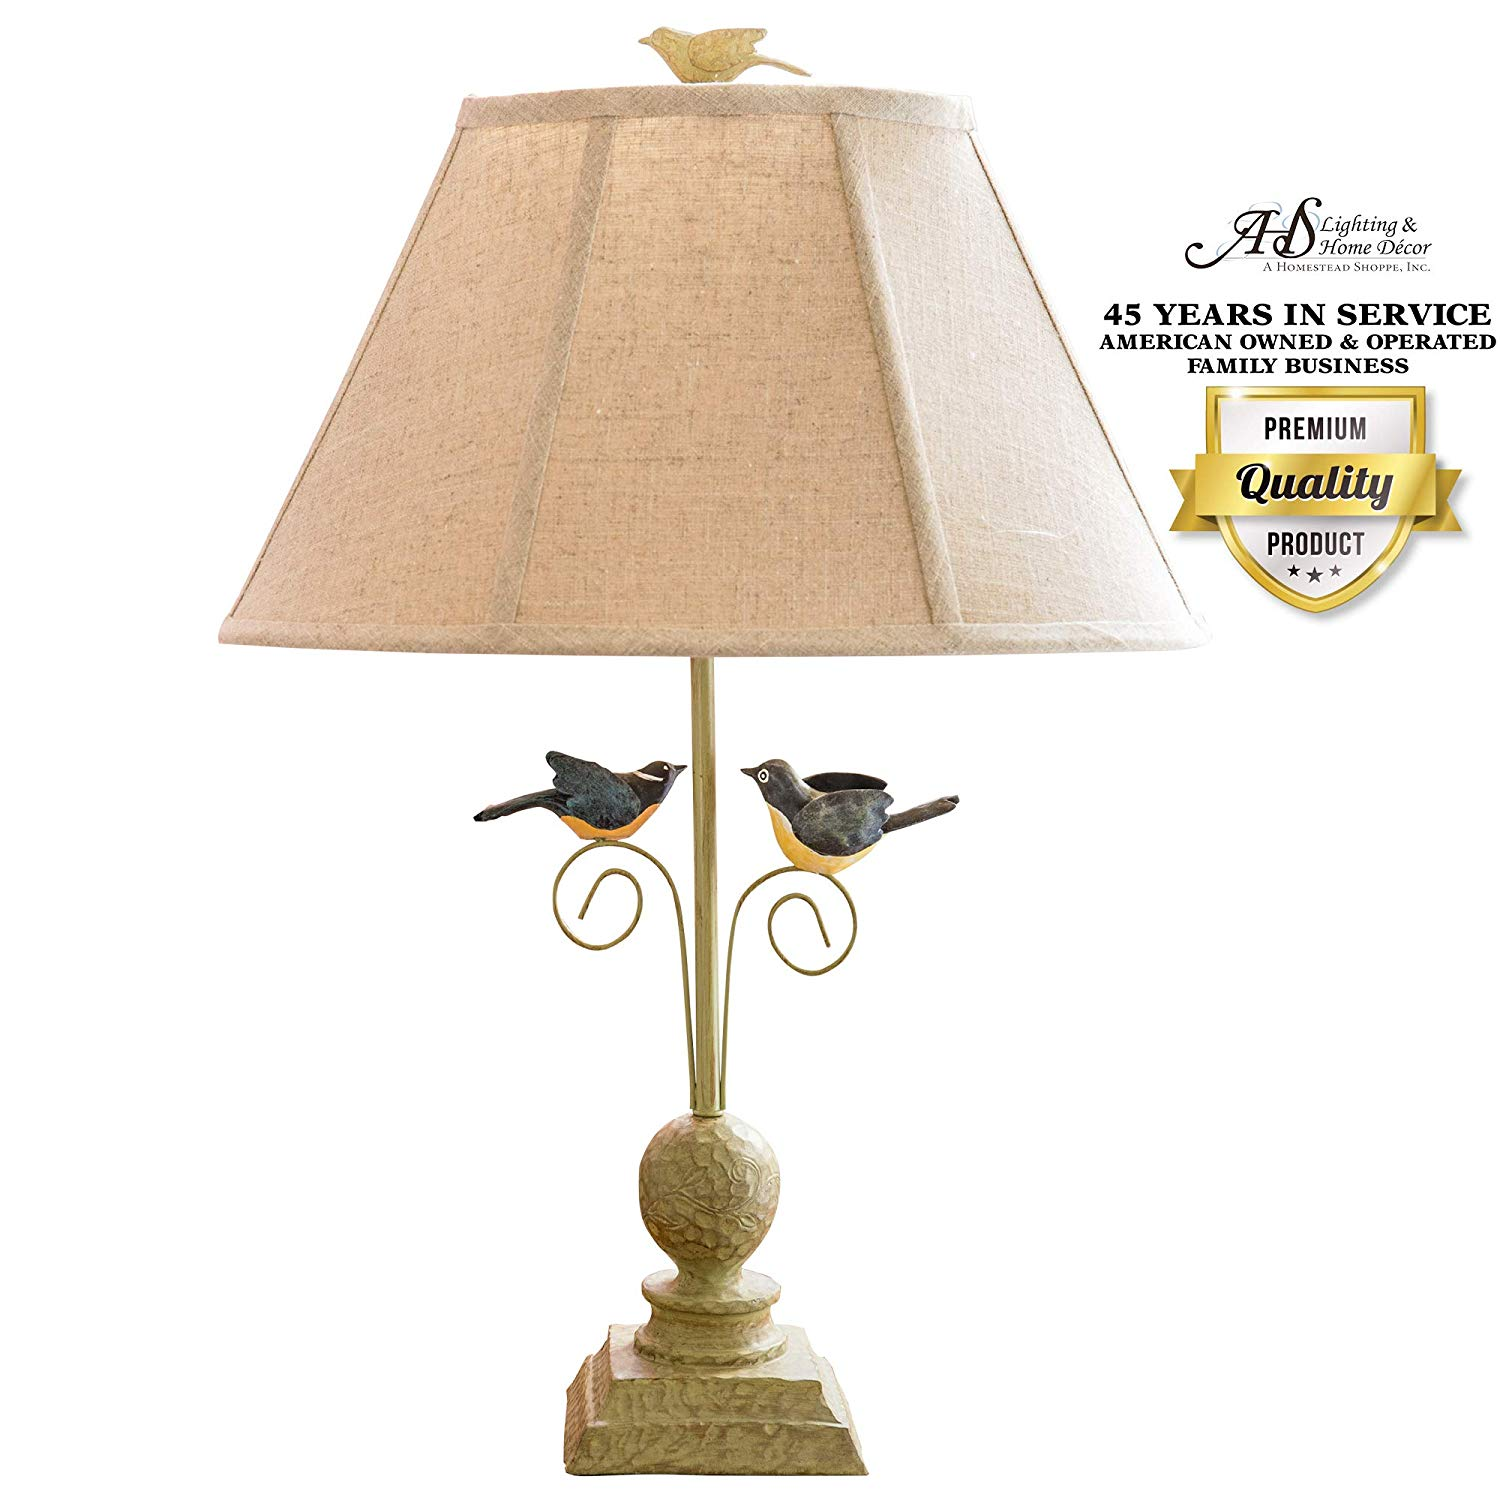 ahs lighting fly away together decorative accent lamp beige table lamps shade green polyresin for end side tables shelves living room small black patio pearl drum stool metal and